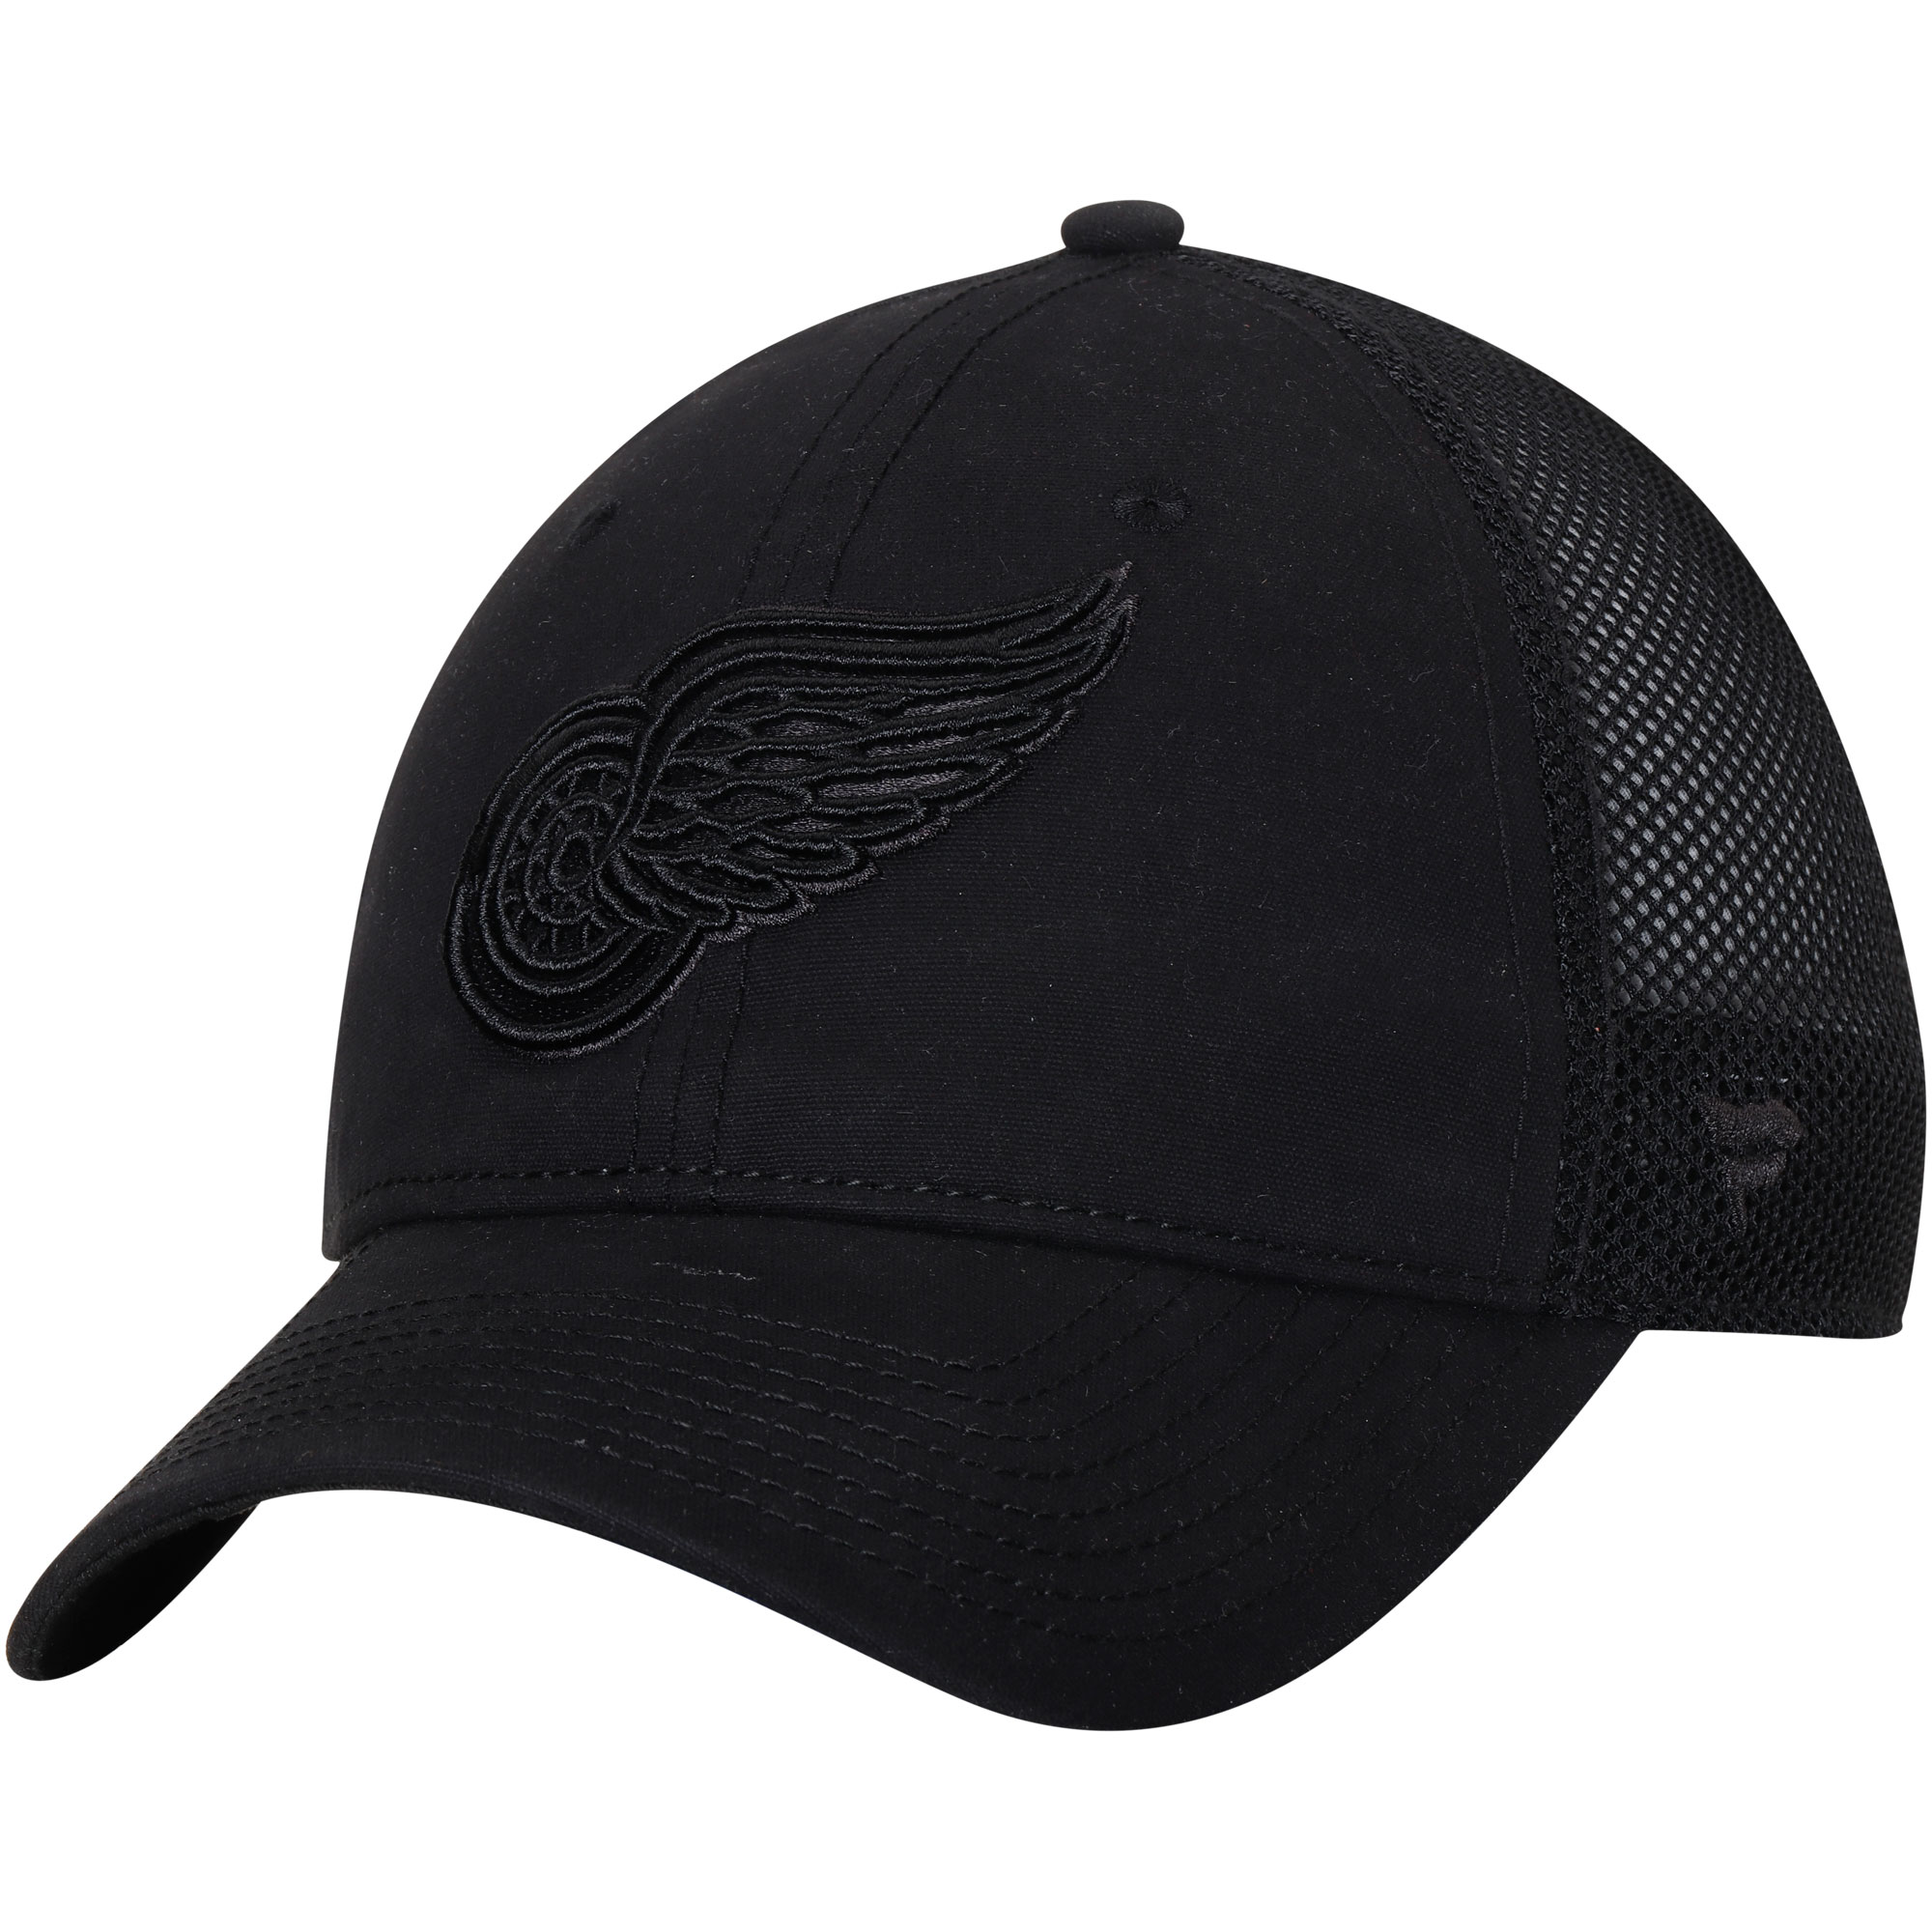 19a66a2f80215 ... sale mens fanatics branded black detroit red wings indestructible  blackout trucker adjustable snapback hat osfa b2ad7